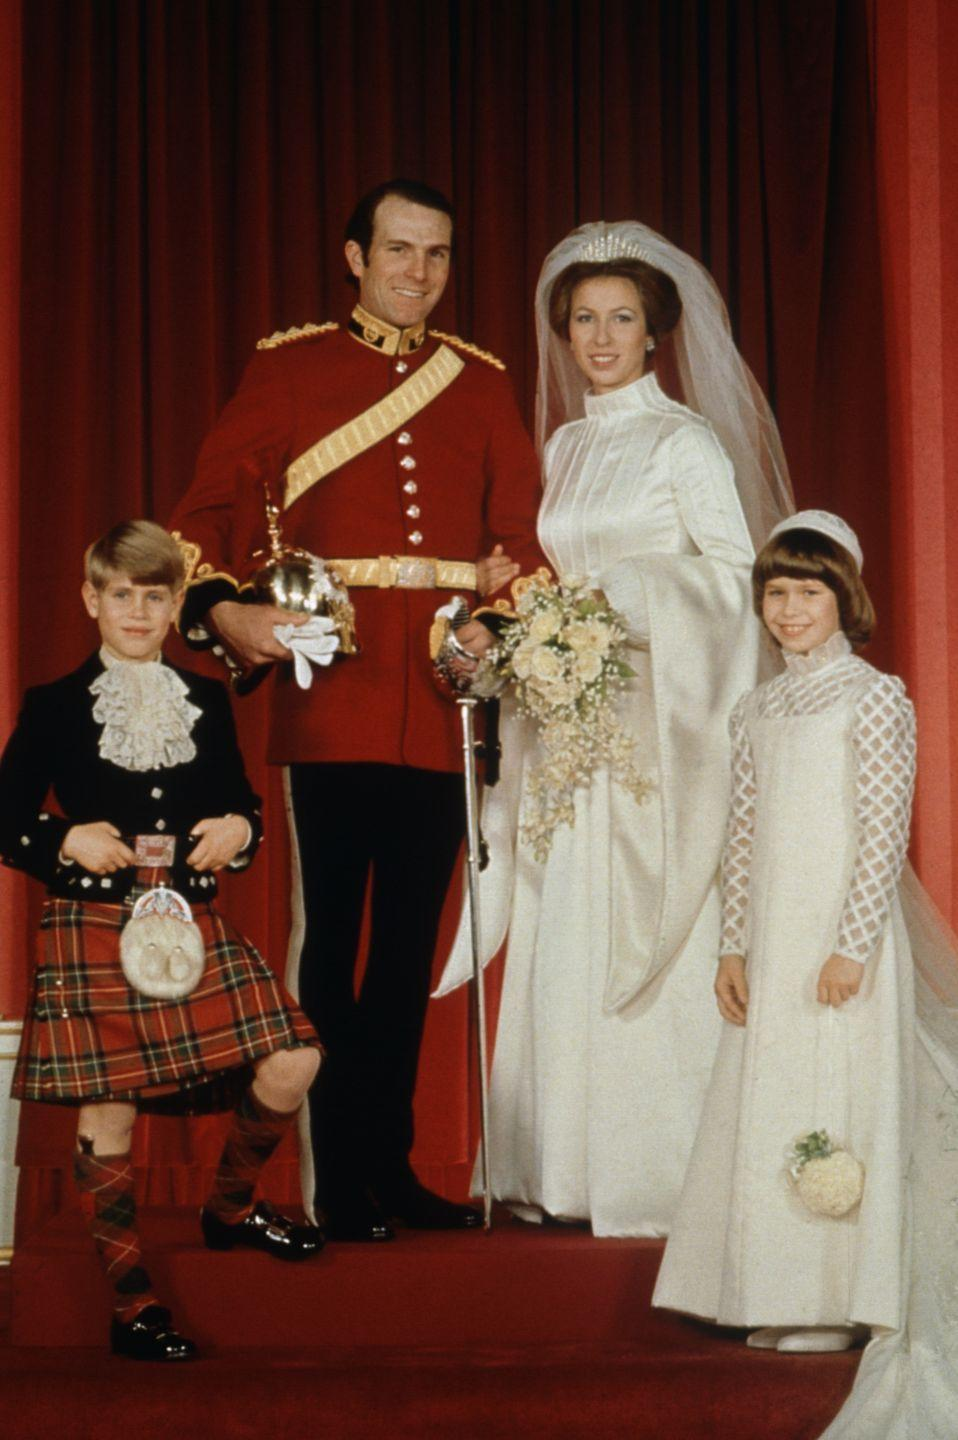 <p>Princess Anne looked regal on her wedding day in an embroidered Tudor-style dress, featuring a high neckline and long bell sleeves, which she wore for her Westminster Abbey nuptials to Mark Phillips. </p>